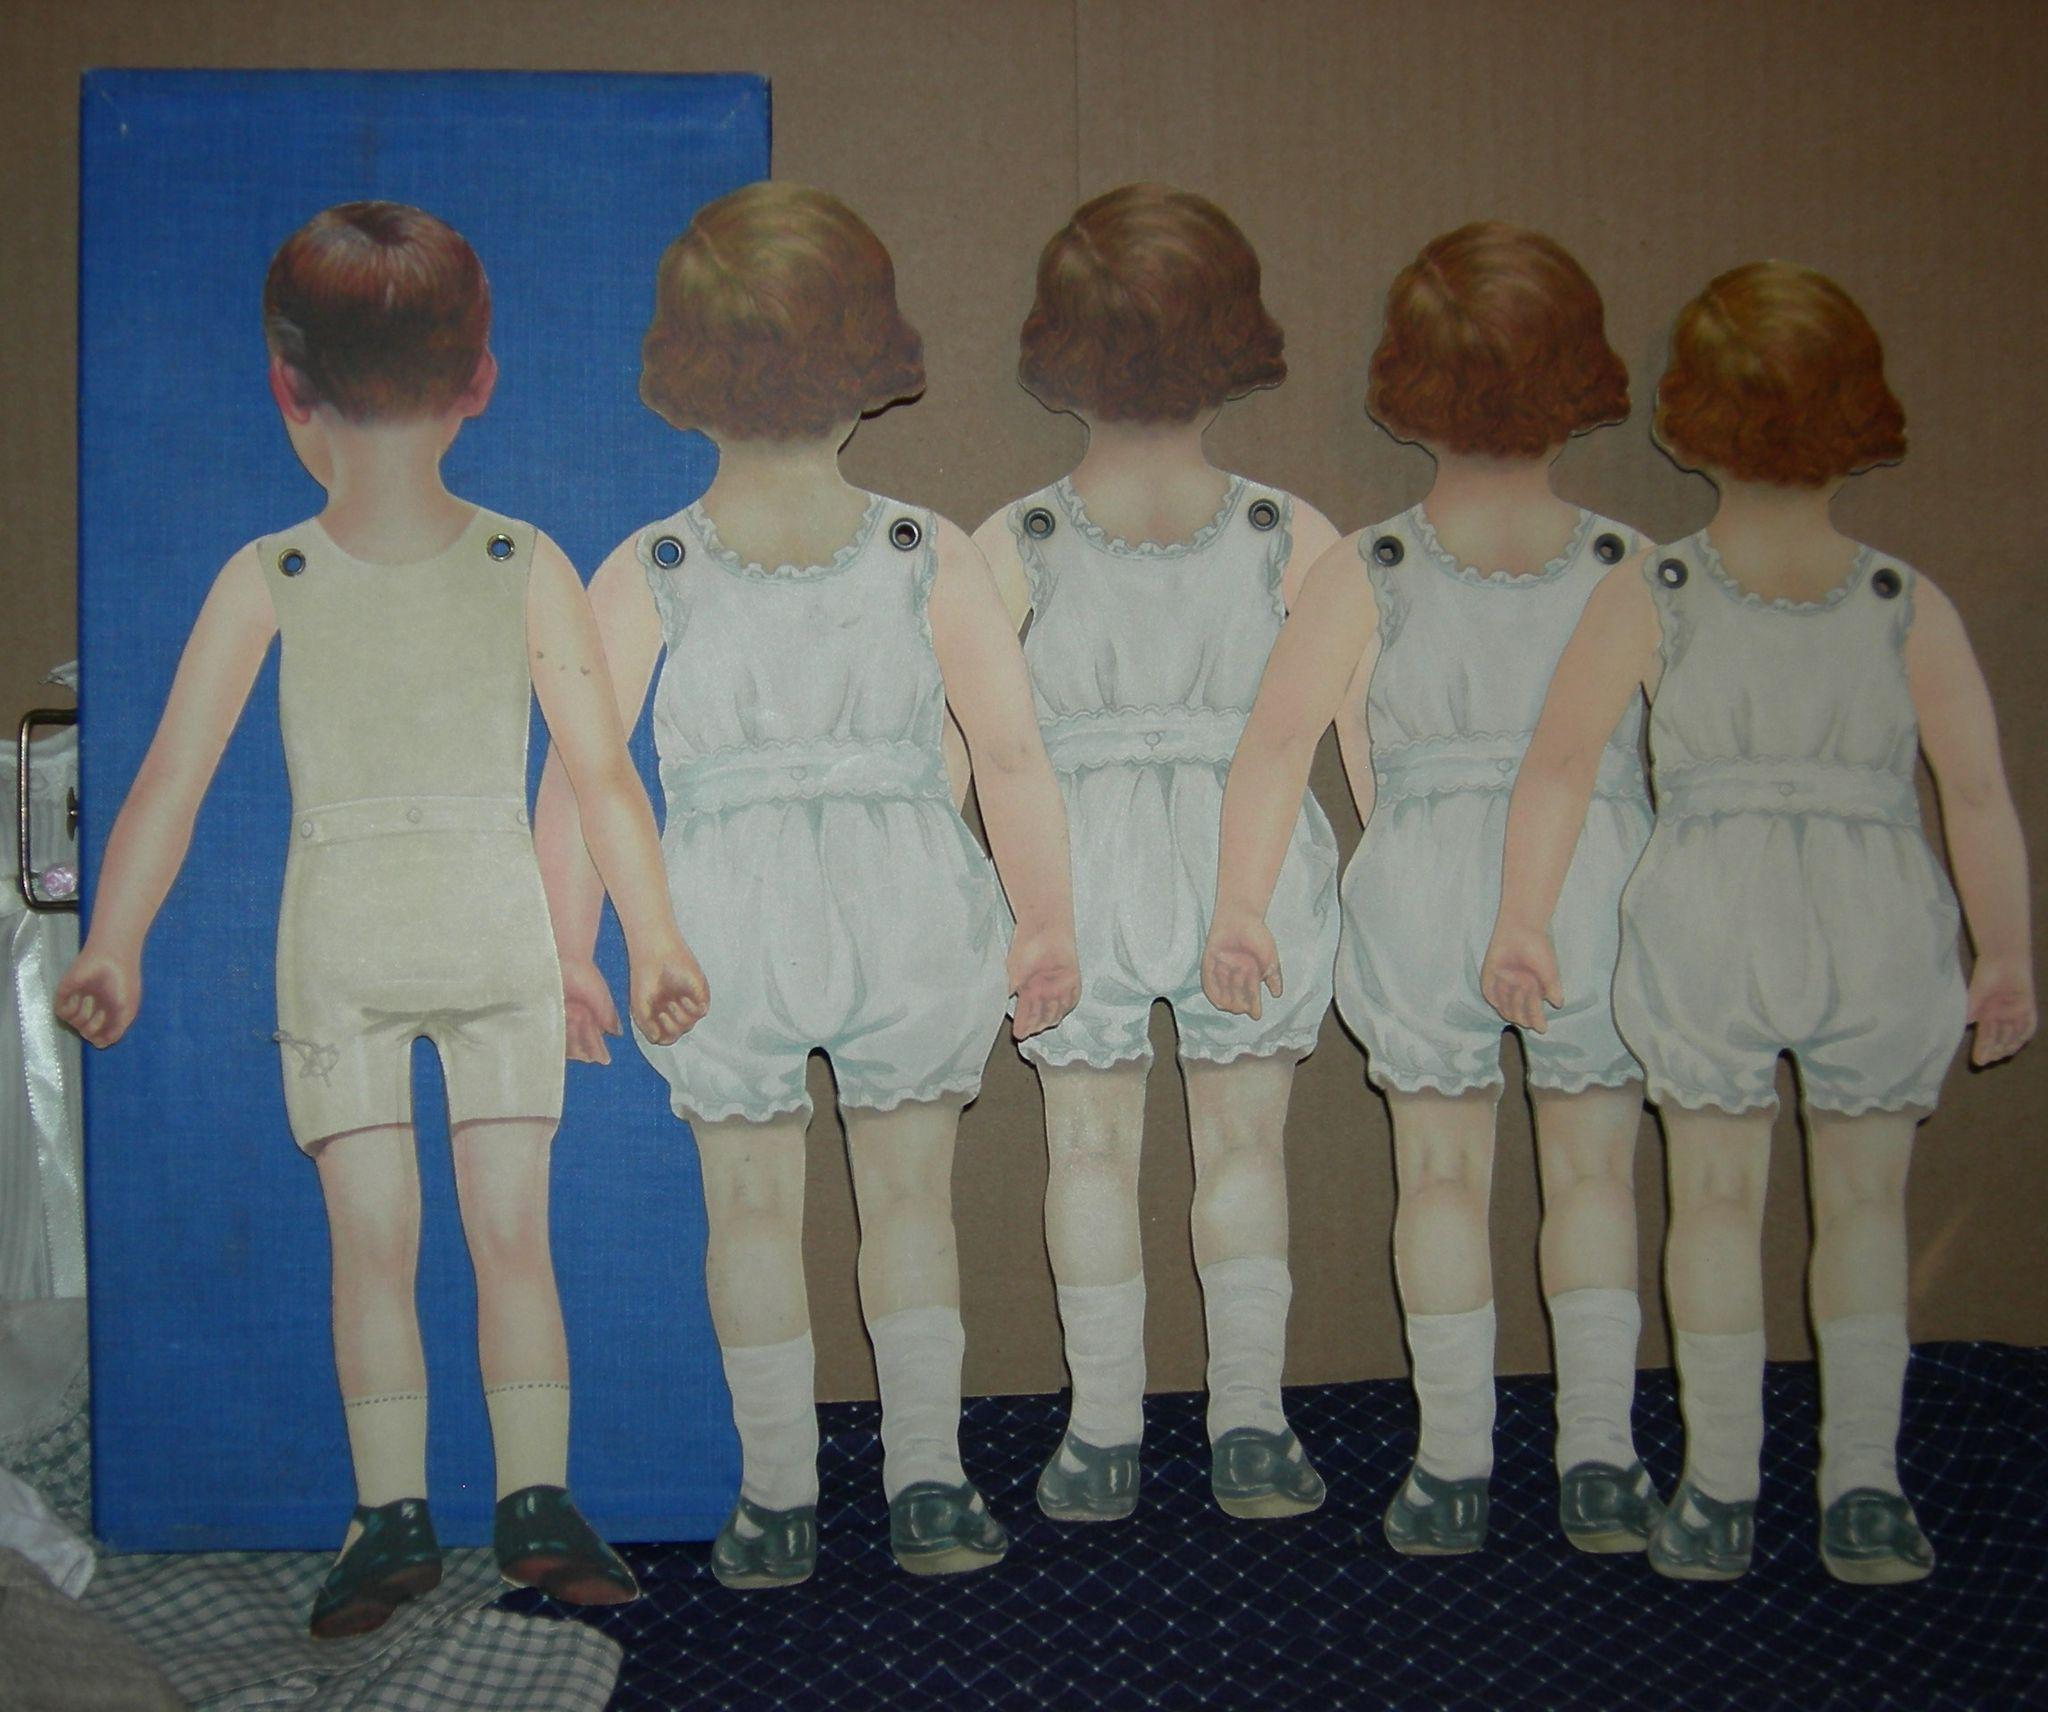 Amazing photo of SET (5) LITHOGRAPHED CARDBOARD DOLLS Hinged Arms w/ Fabric Clothes  with #204677 color and 2048x1712 pixels